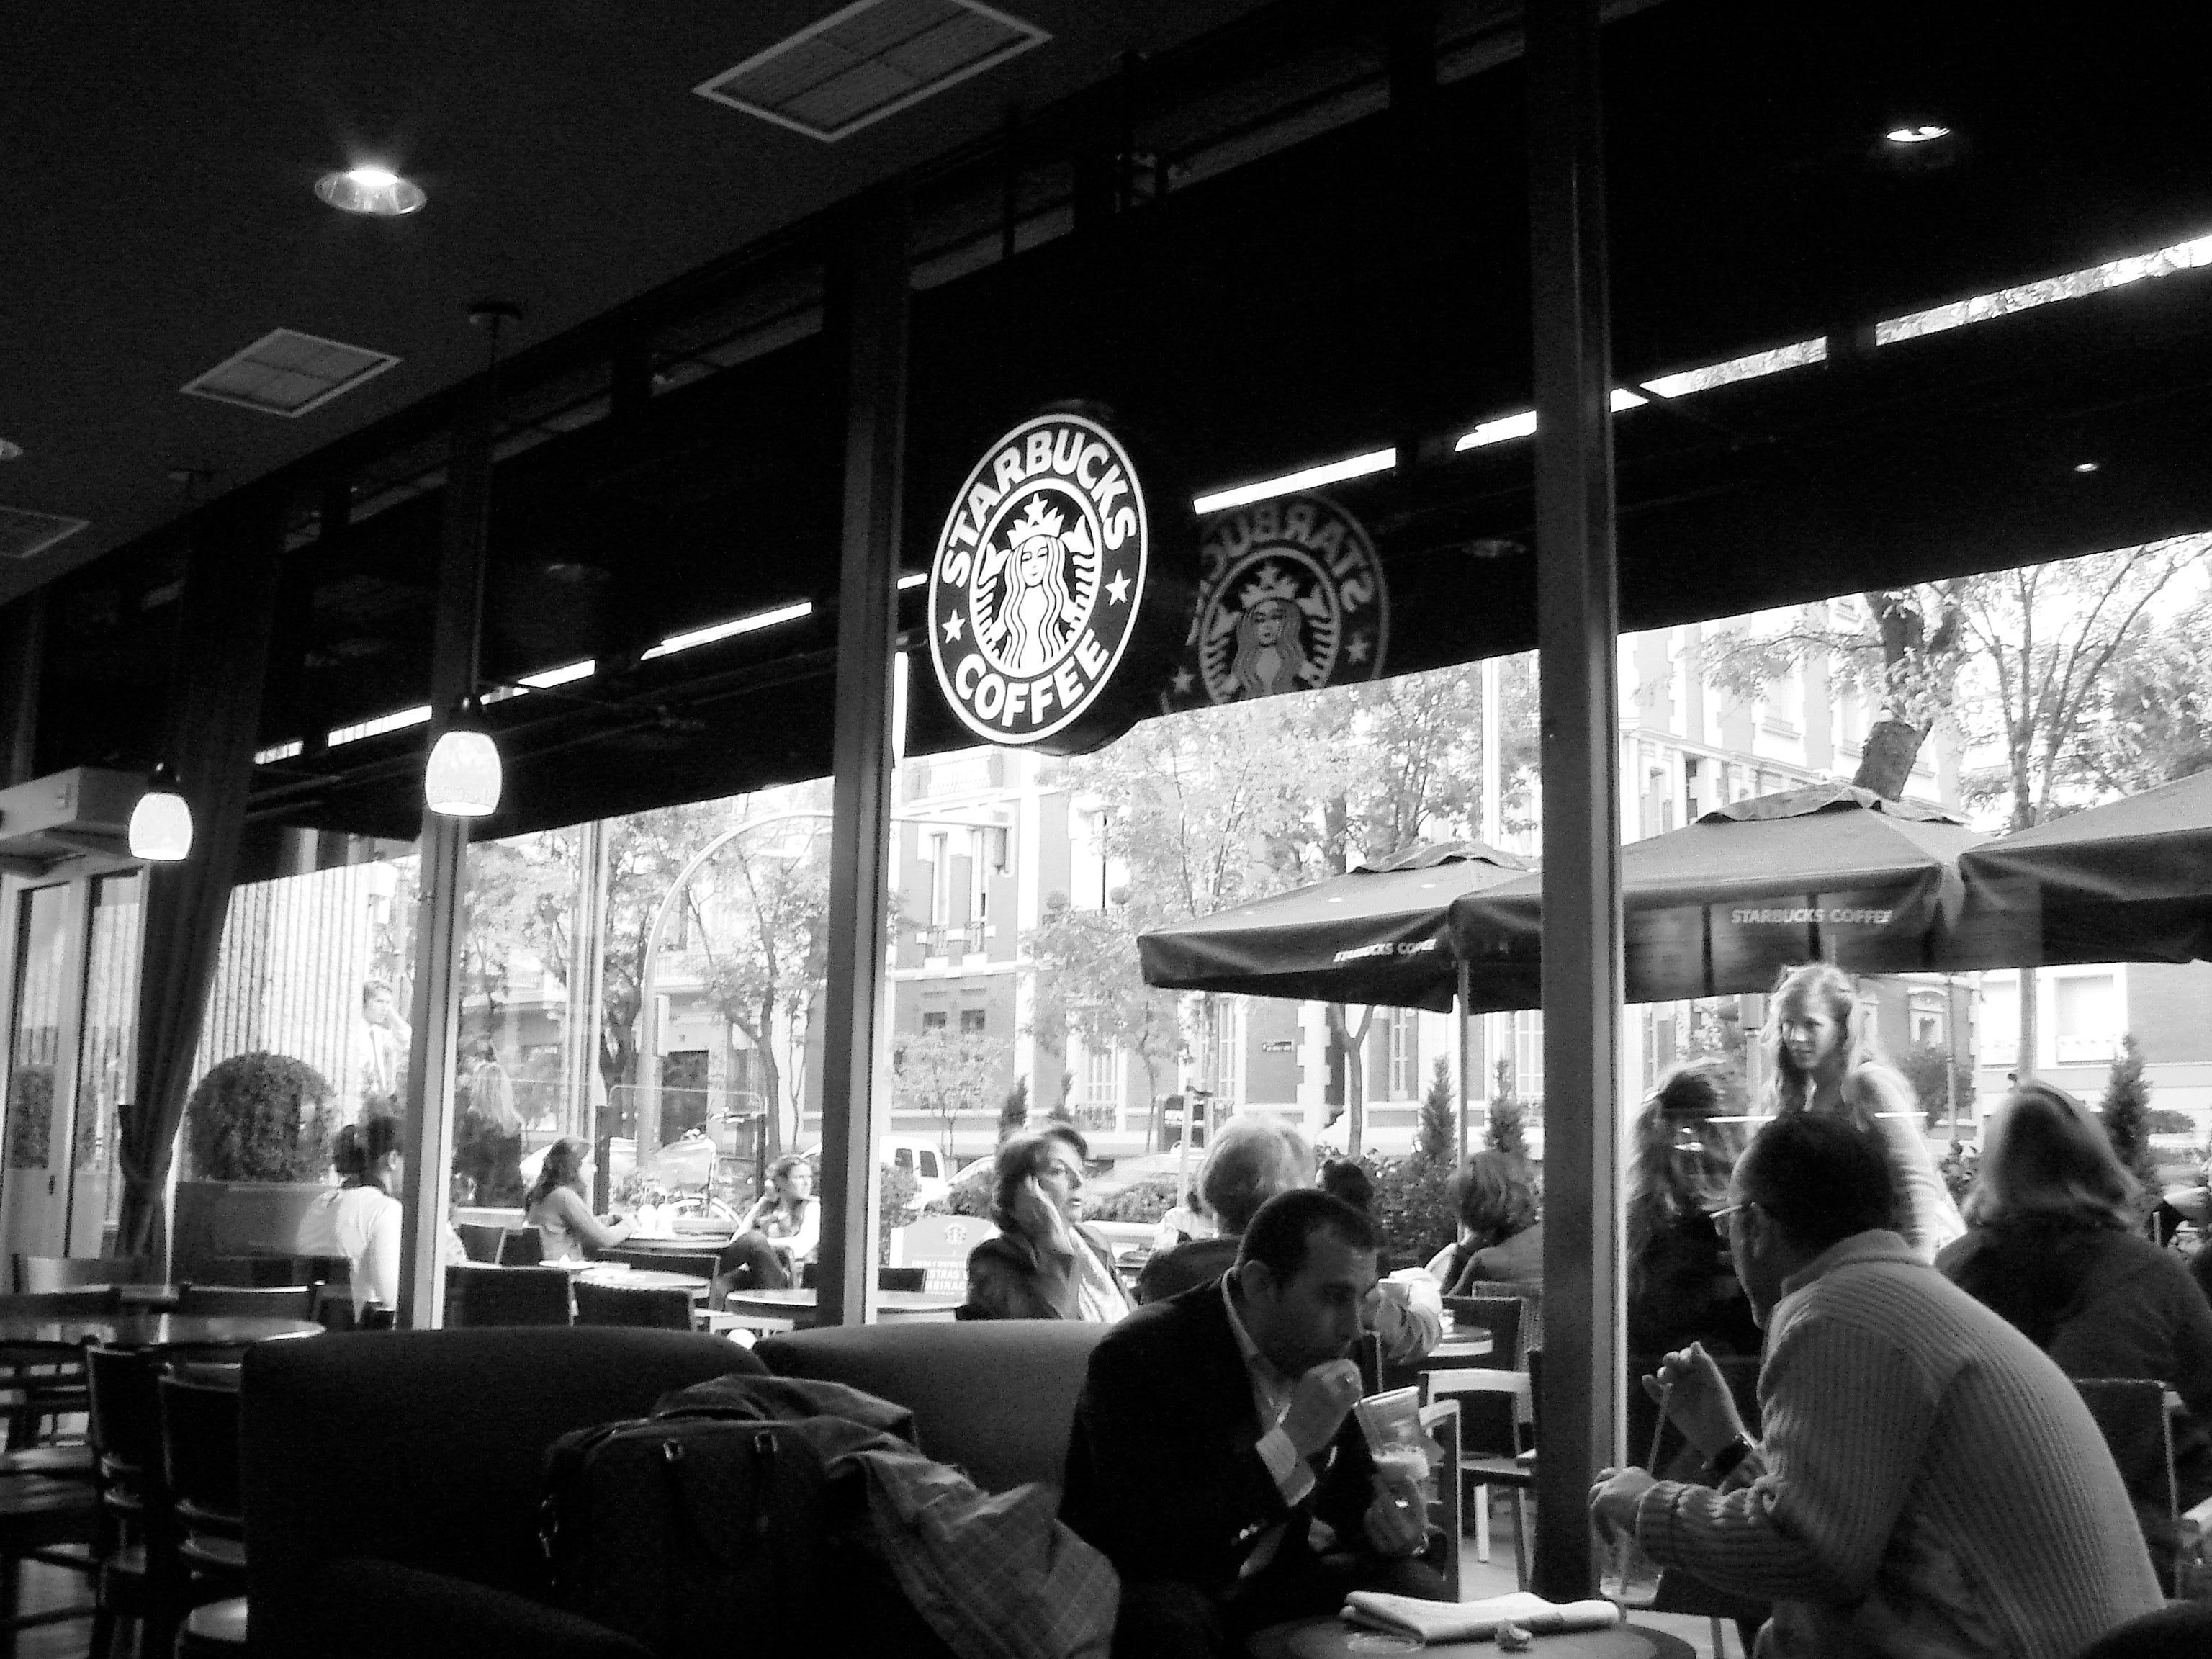 Restaurante en Starbucks Coffee